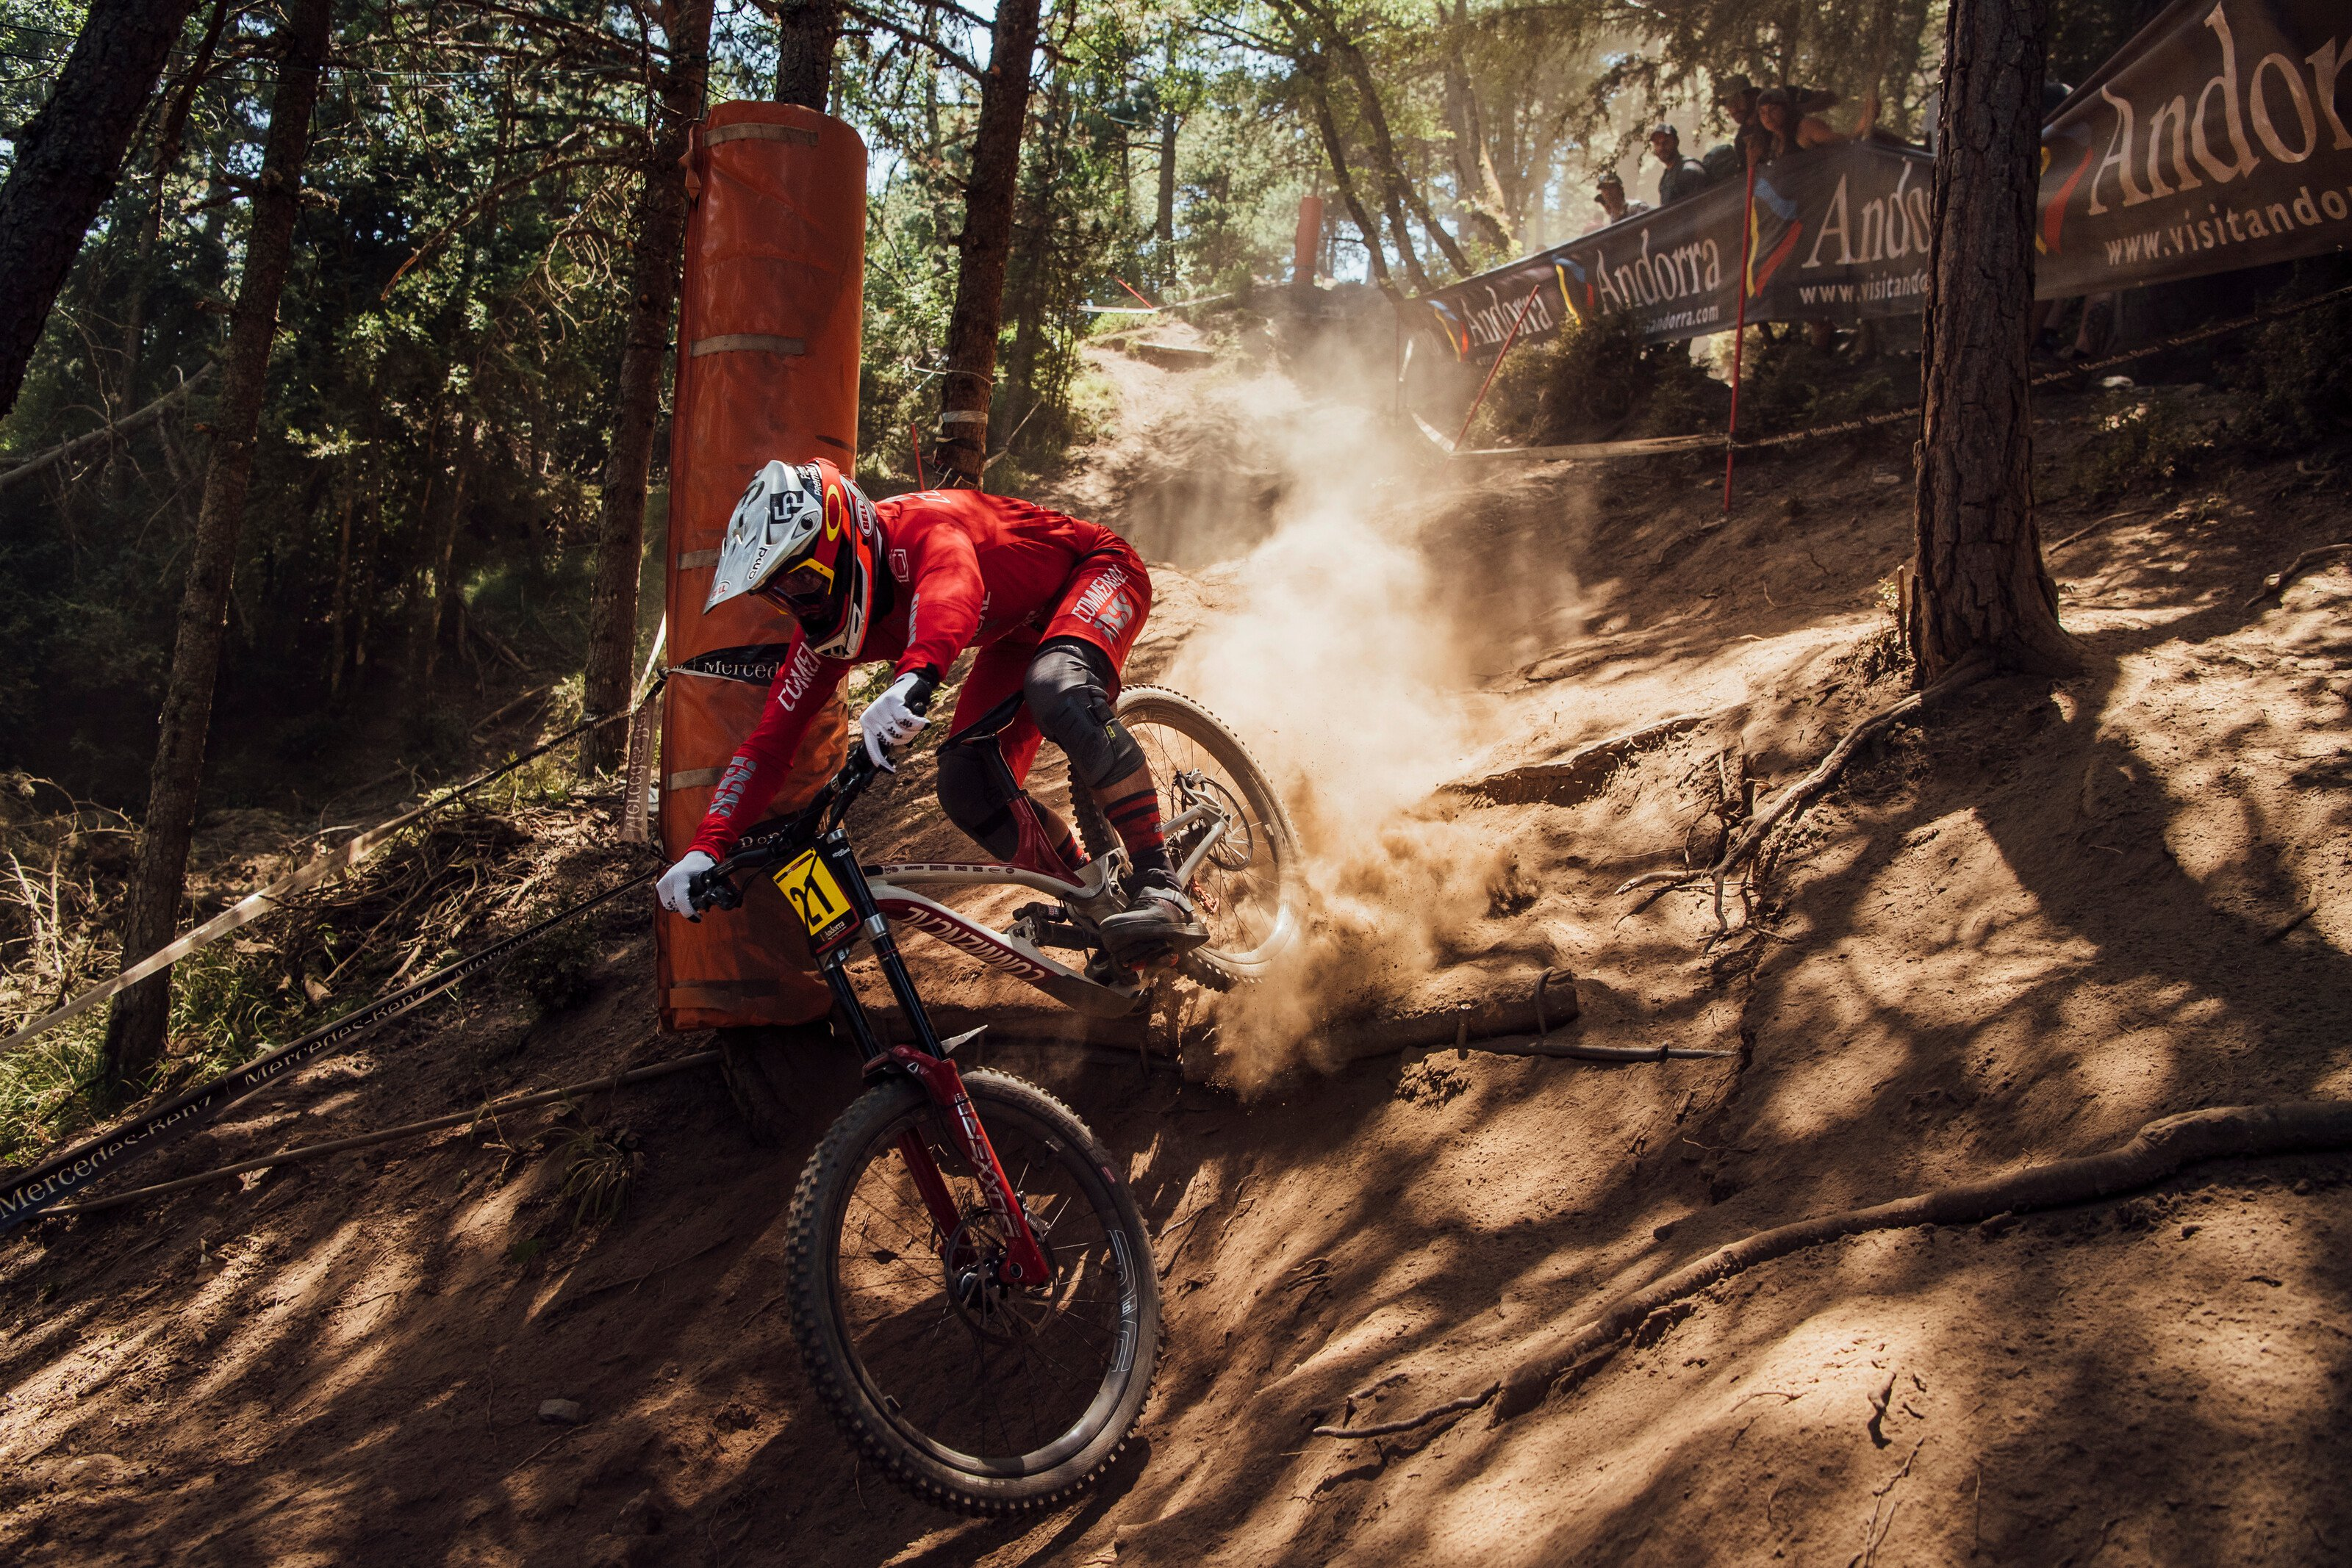 Remi Thirion shining on the Andorra DH World Cup track 2019